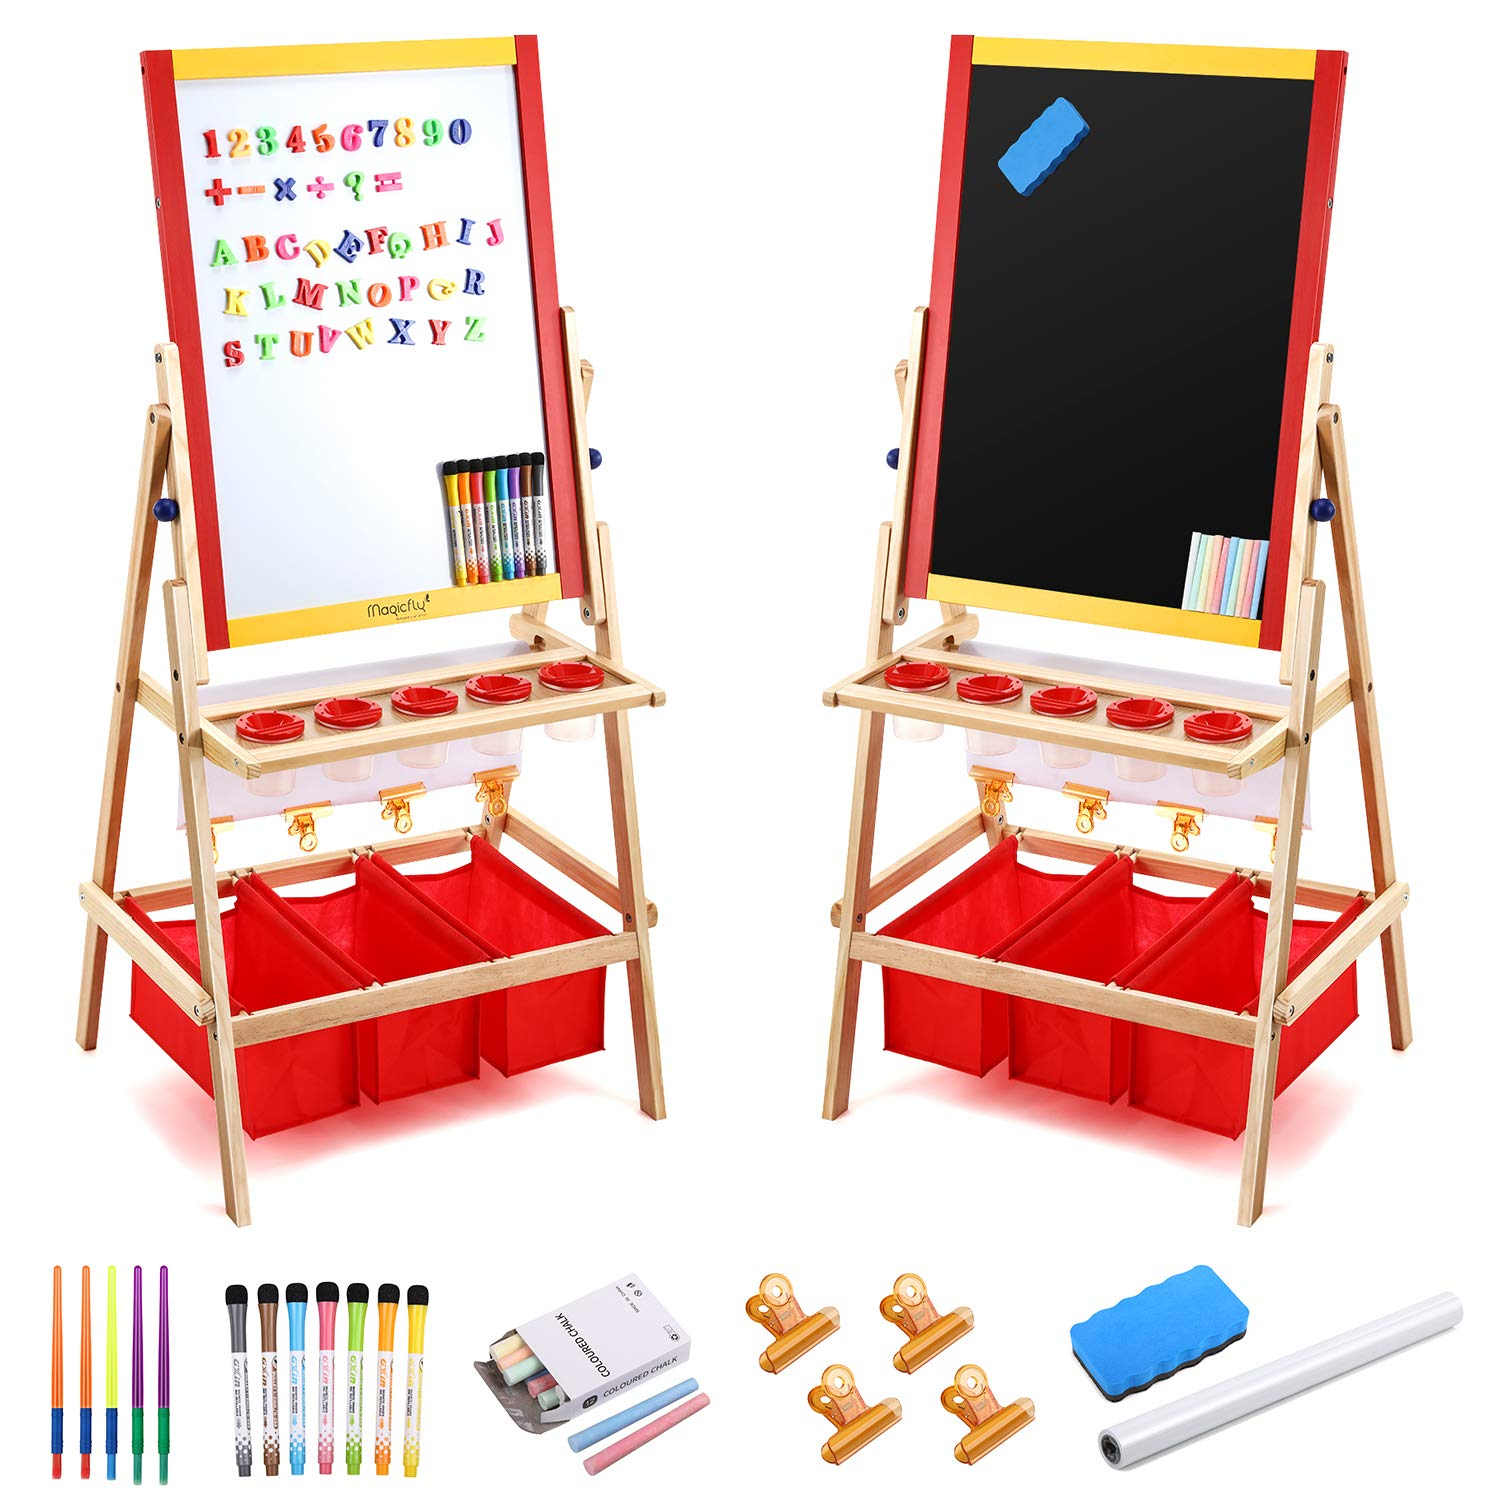 Magicfly Kids Art Easel with Paper Roll, Double Sided Toddler Childrens Easel Chalkboard and Magnetic Dry Erase Board for Kid Painting and Drawing, Multiple Art Accessories Included